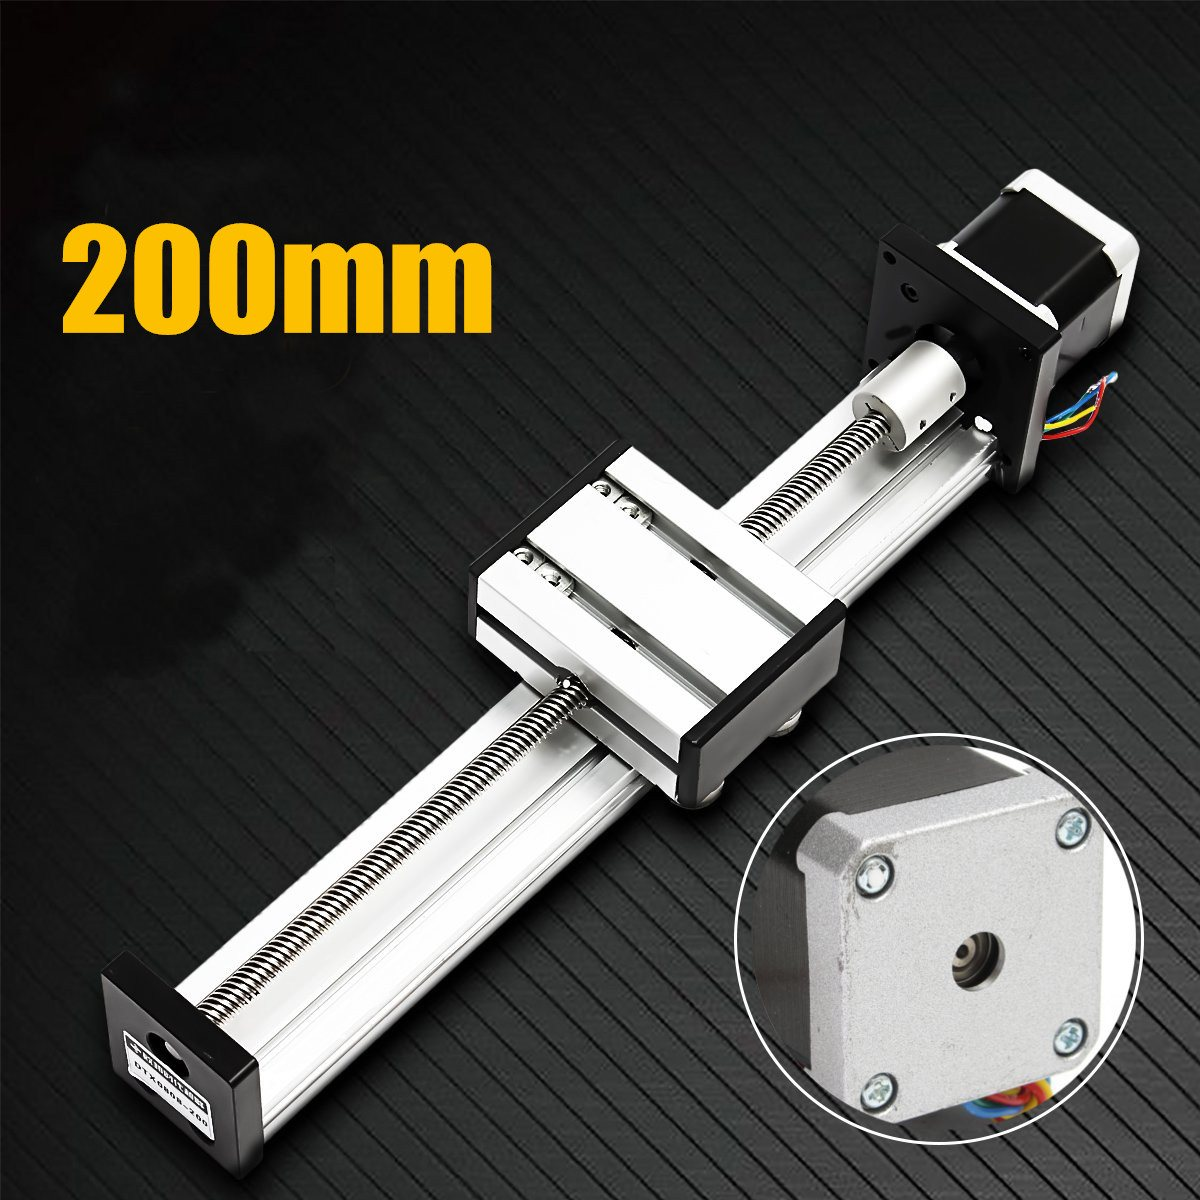 High Quality 200mm Slide Stroke CNC Linear Motion Lead Screw Slide Stage Stroke 42 Actuator Stepper Motor For Engraving Machine funssor 50mm 150mm slide stroke cnc z axis slide linear motion nema17 stepper motor for reprap engraving machine